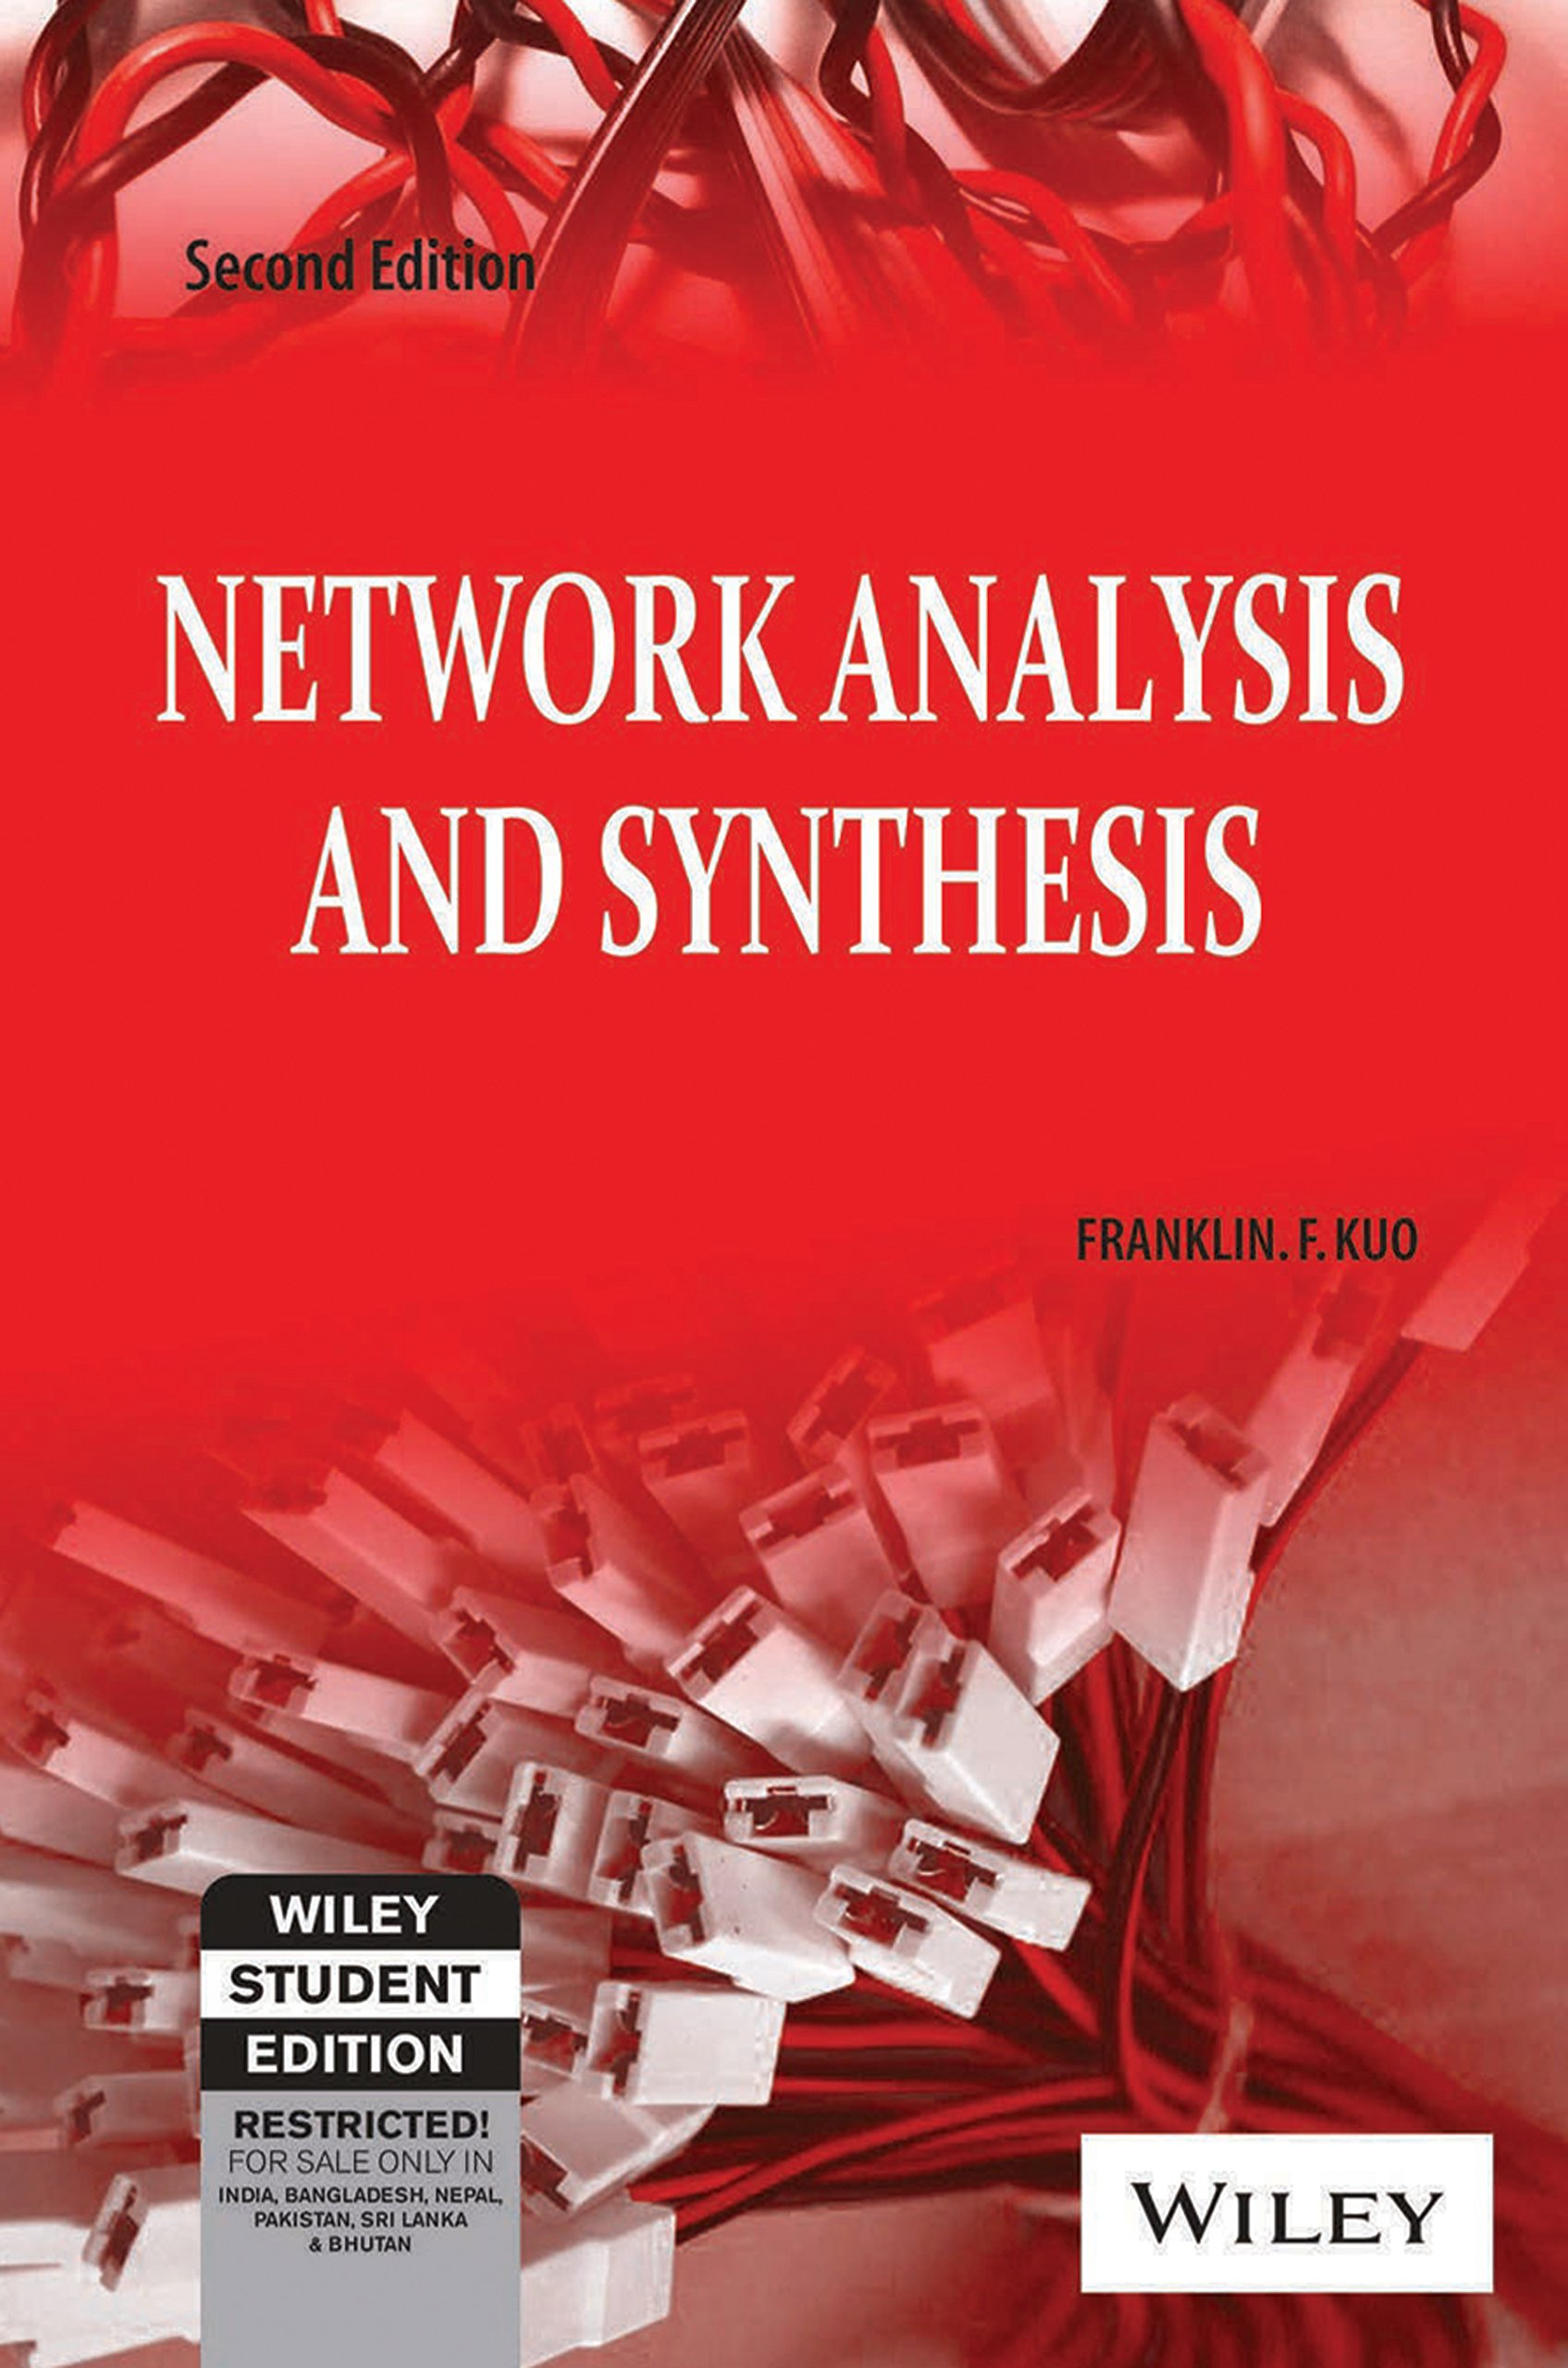 NETWORK ANALYSIS AND SYNTHESIS EBOOK